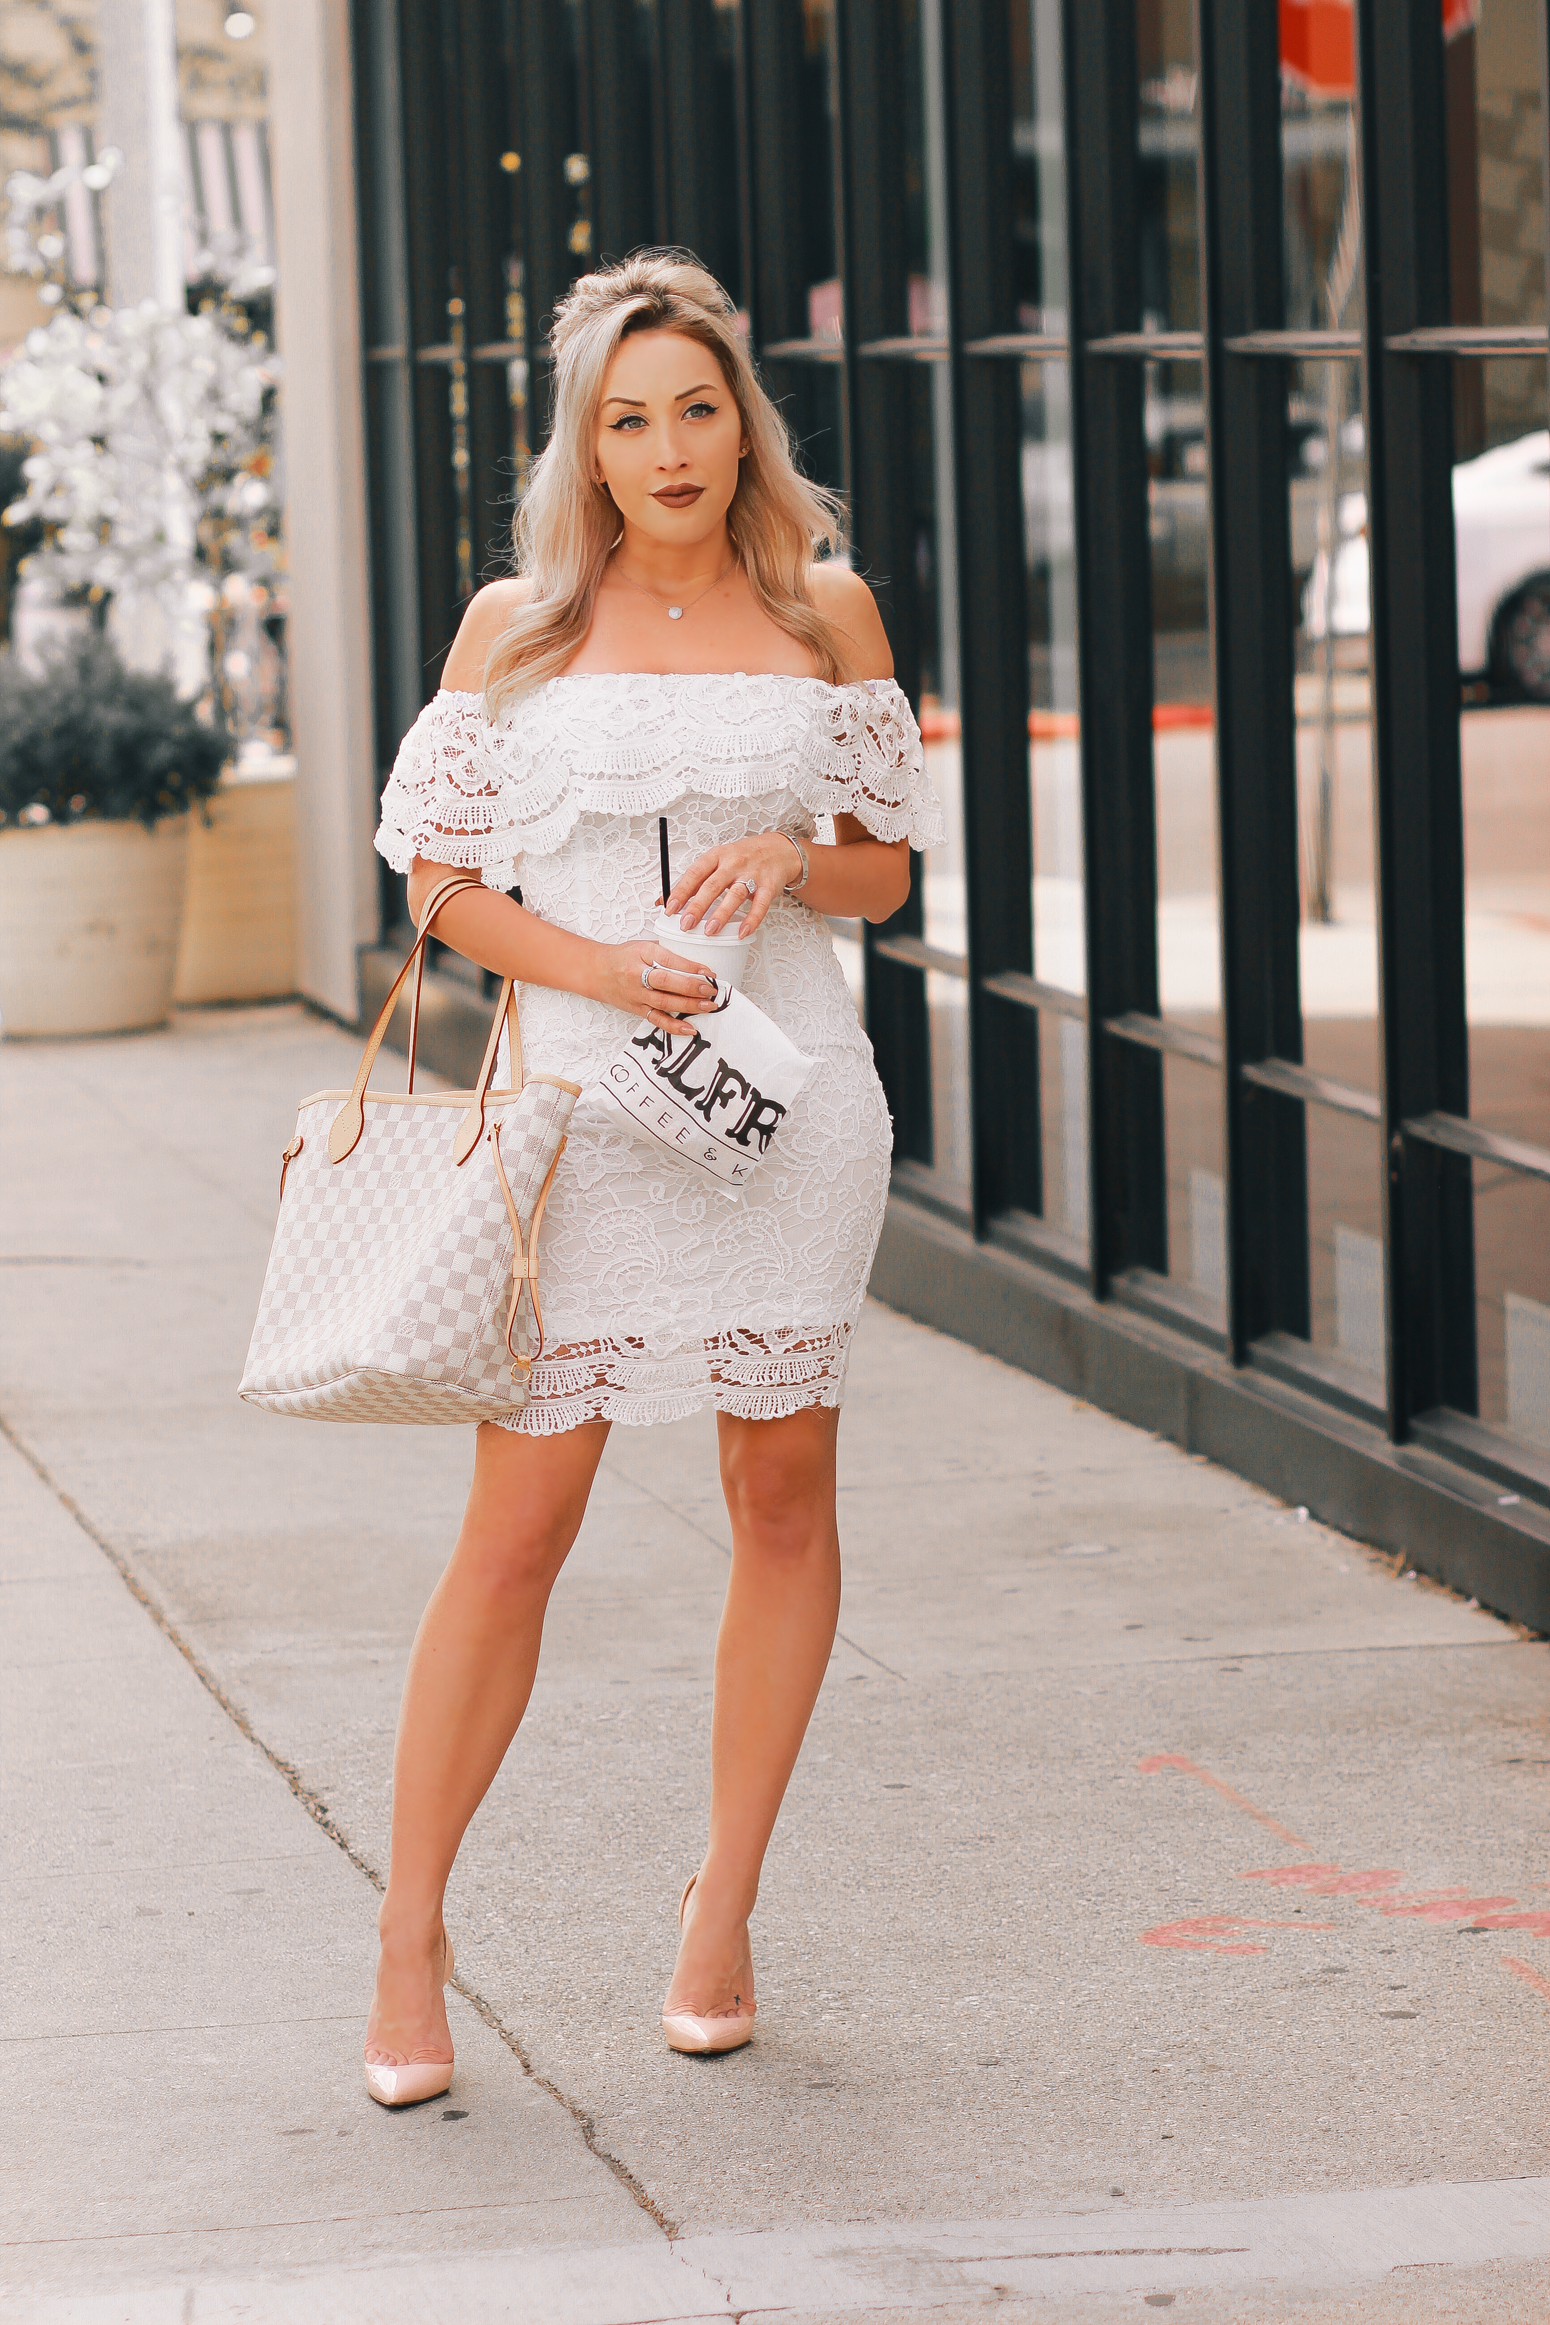 Blondie in the City | White Lace & Louis Vuitton